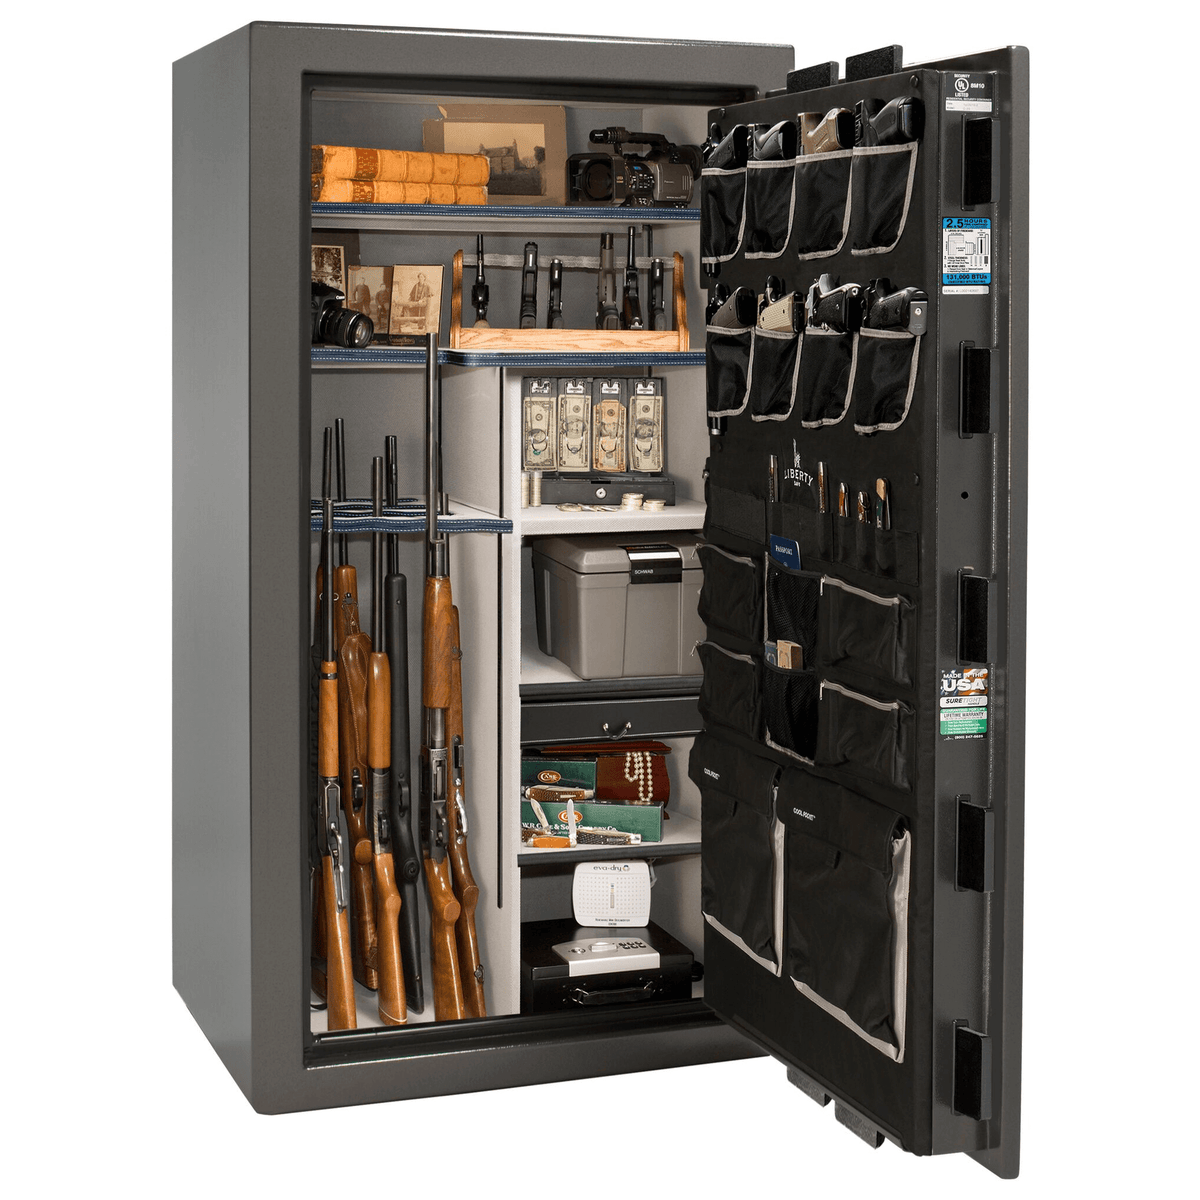 "Magnum | 40 | Level 8 Security | 150 Minute Fire Protection | Gray | Black Mechanical Lock | 65.5""(H) x 36""(W) x 32""(D)"